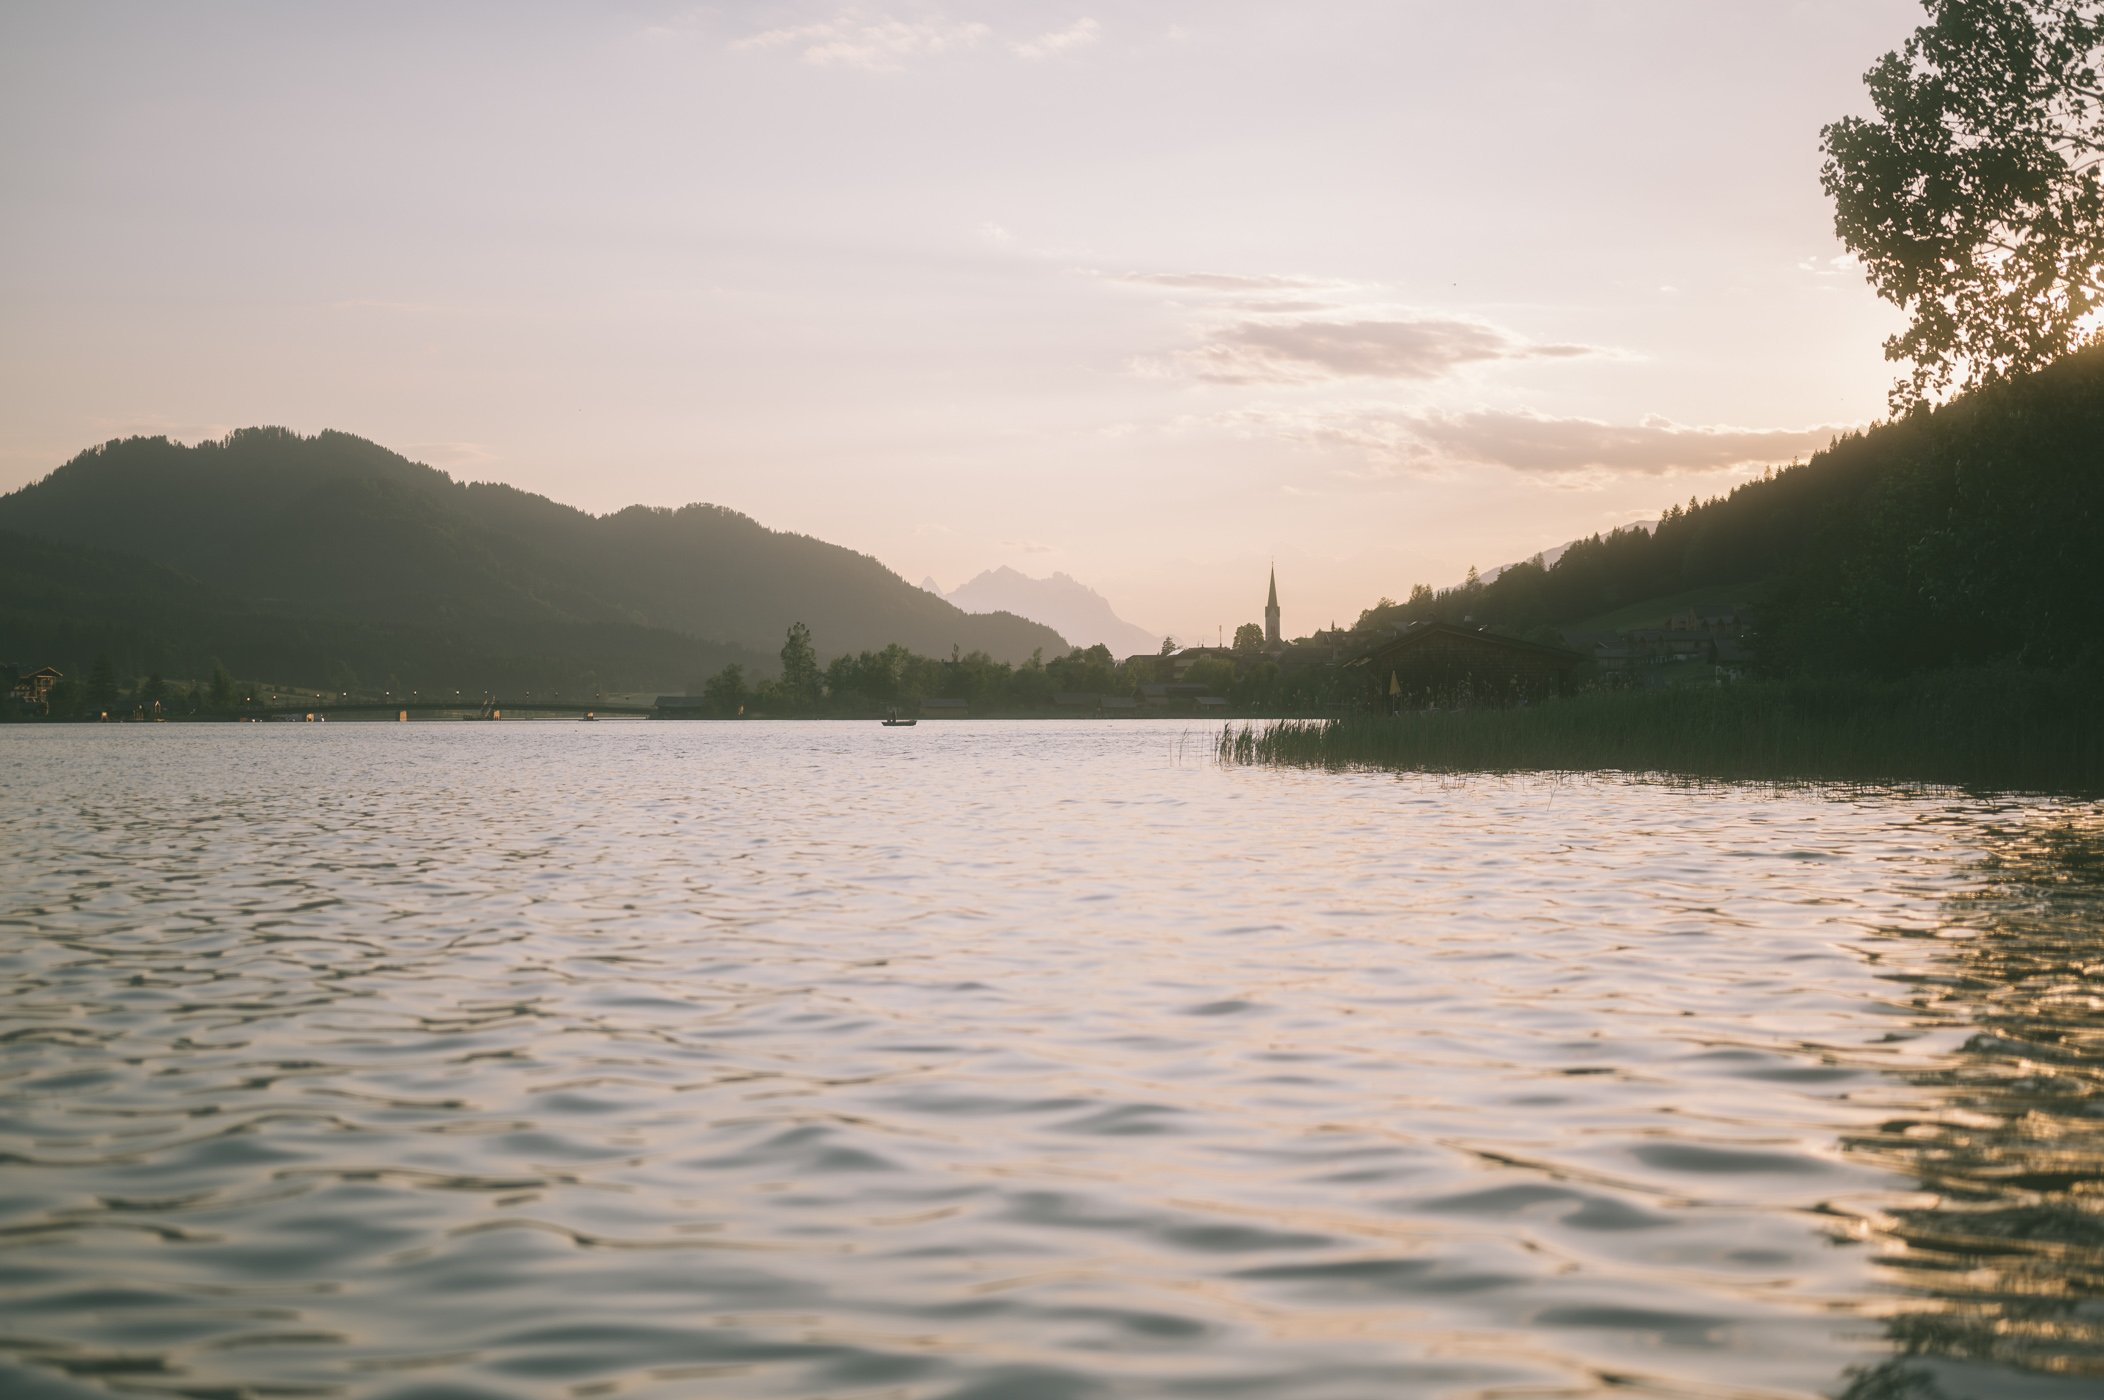 Sunset at lake Weissensee